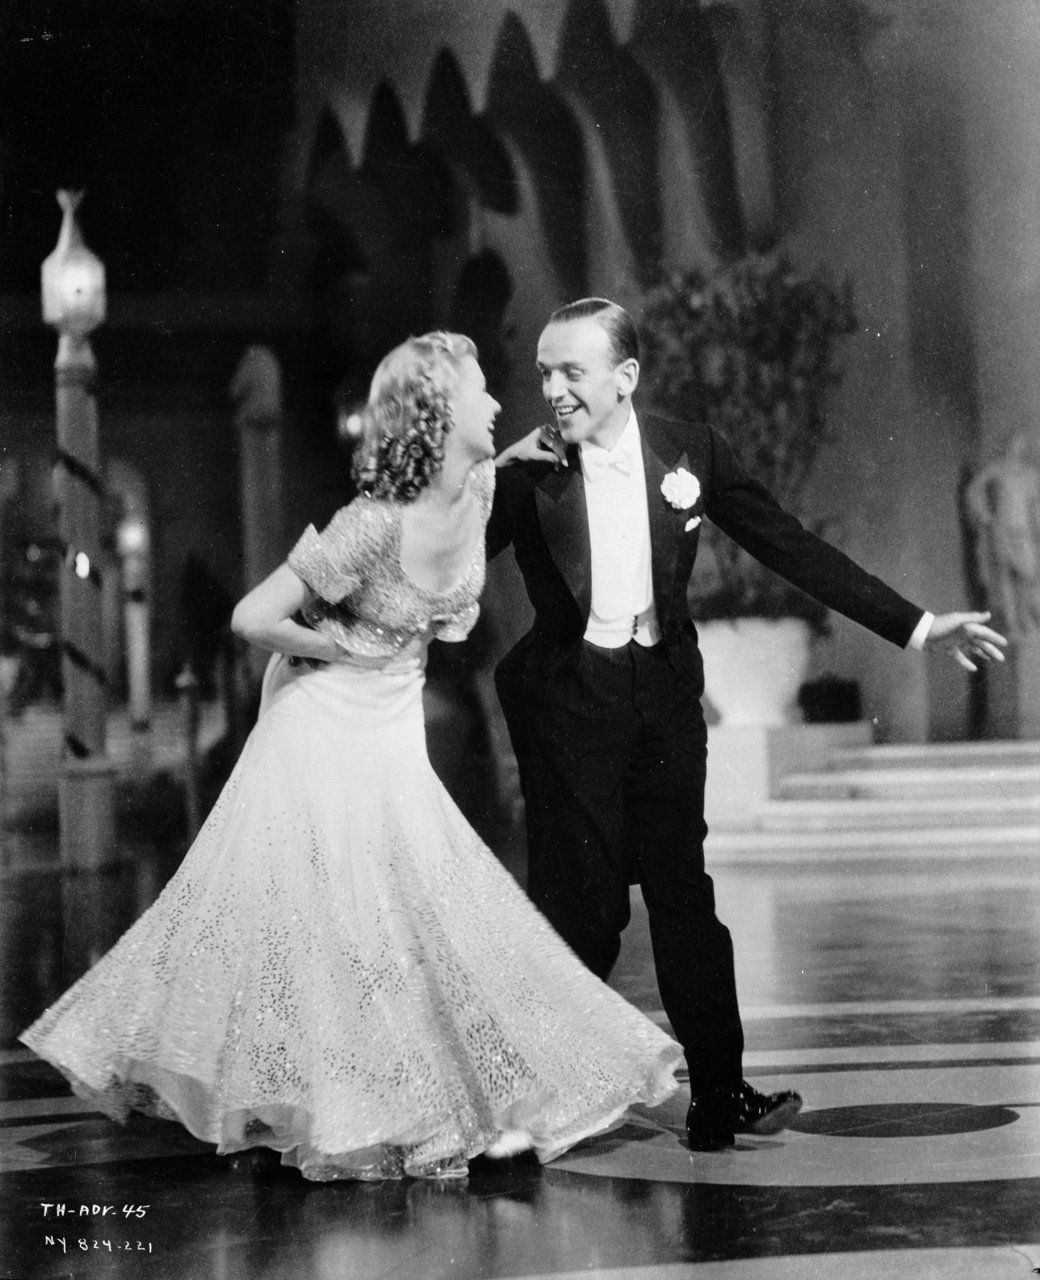 Ginger Rogers & Fred Astaire |    ART & PHOTOGRAPHY